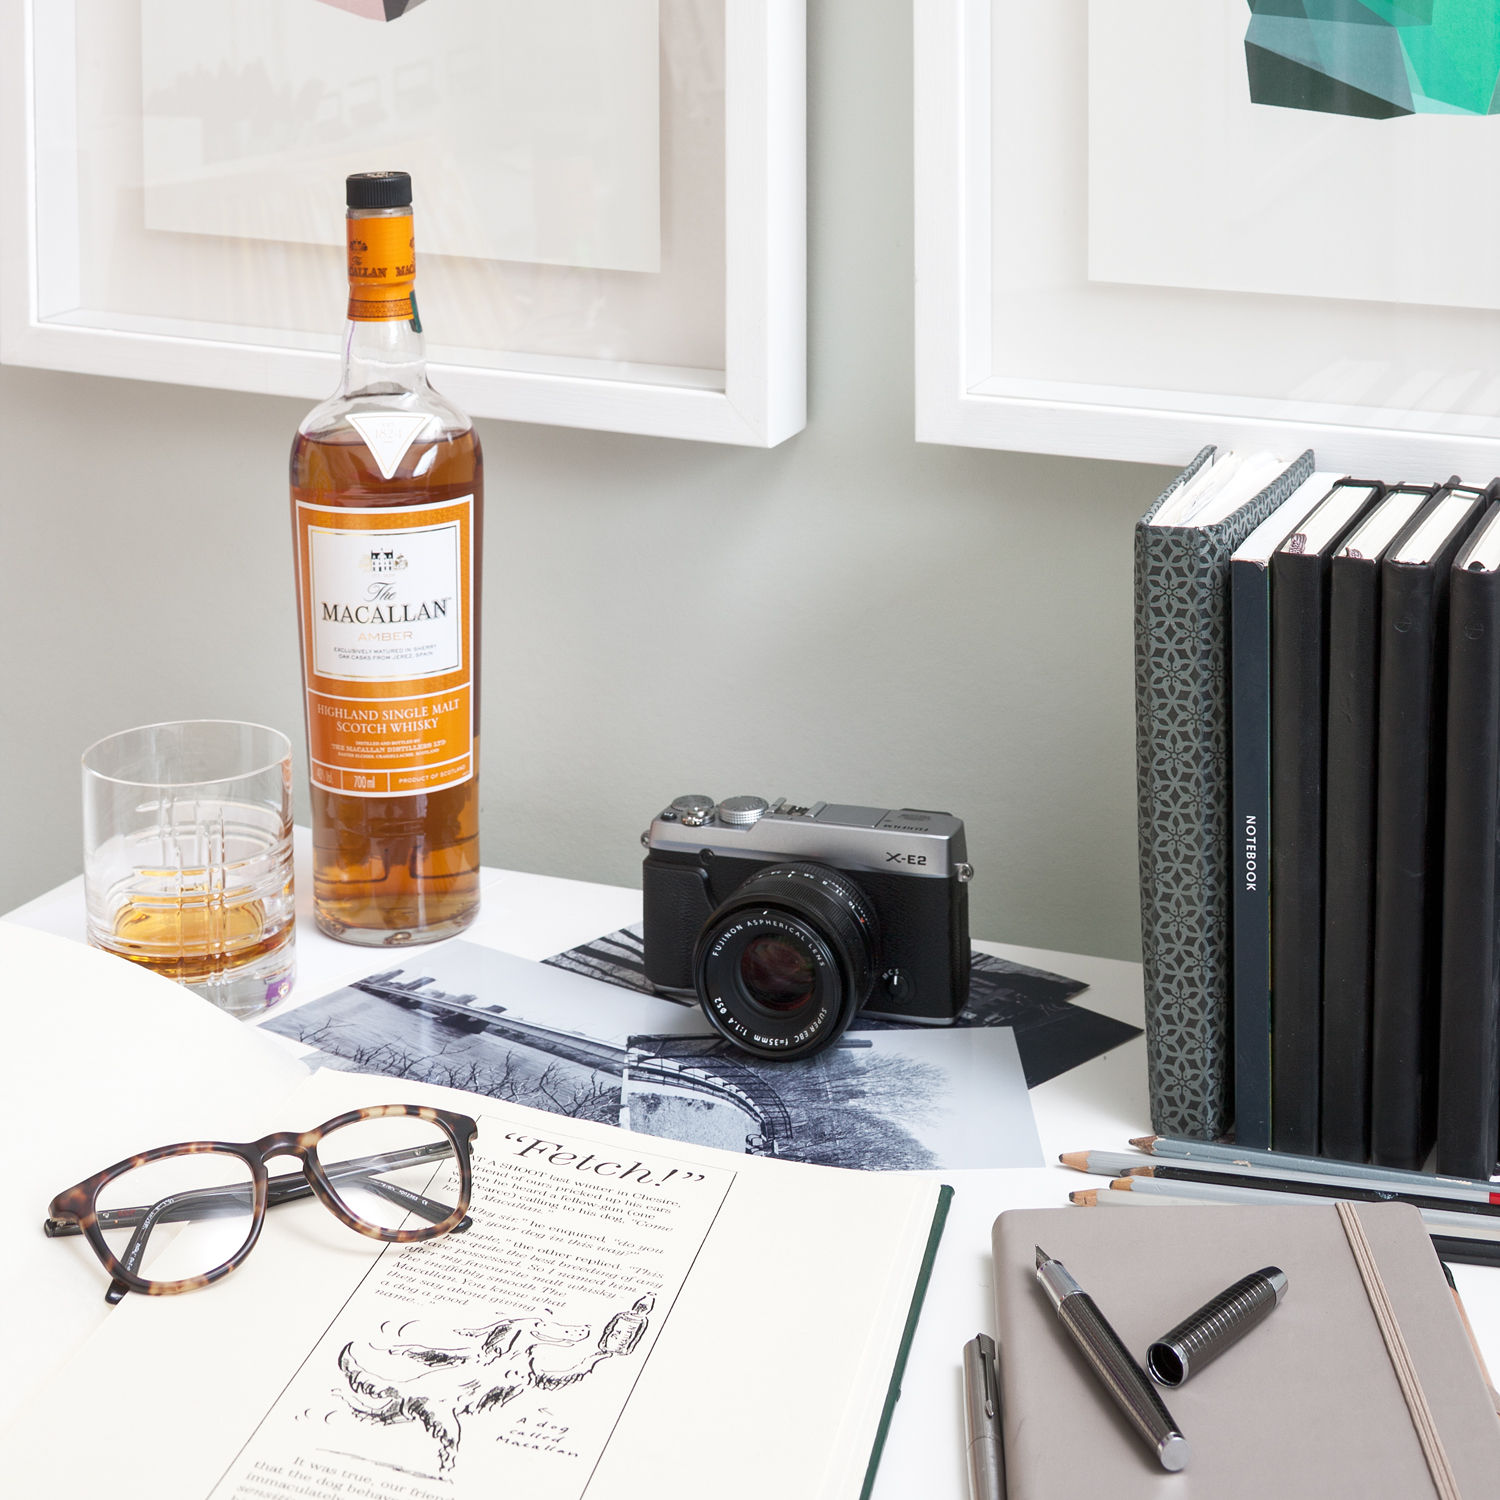 Macallan_BP_5501.jpg